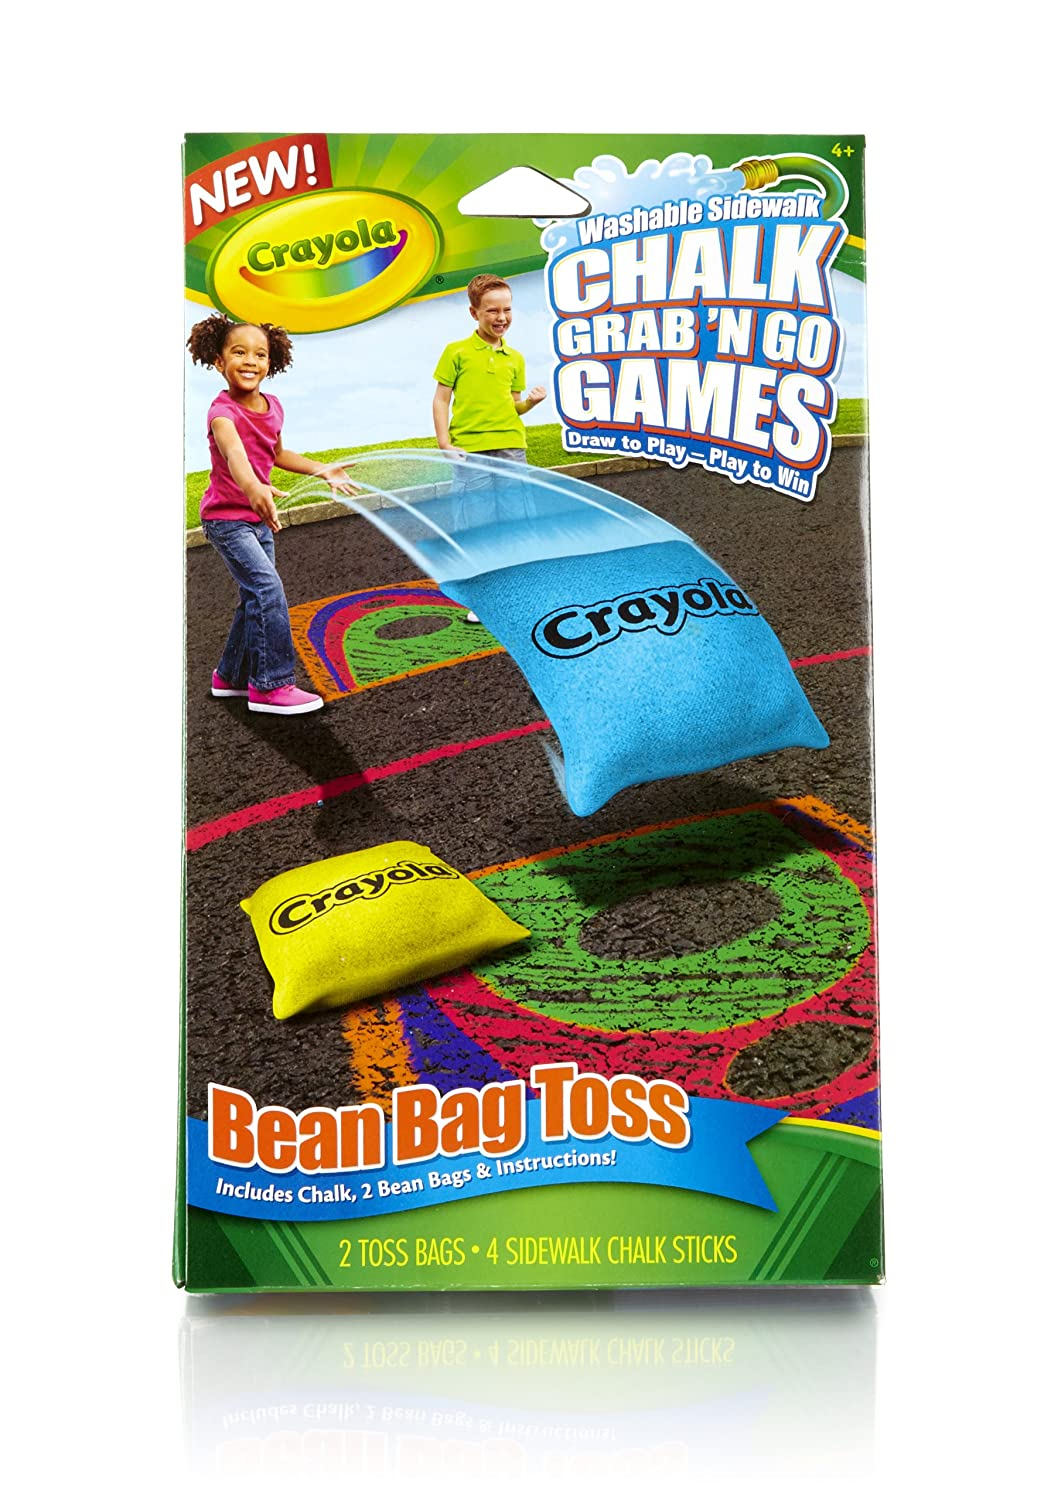 Crayola Bean Bag Toss Chalk Grab and Go Games Binney /& Smith 03-5091